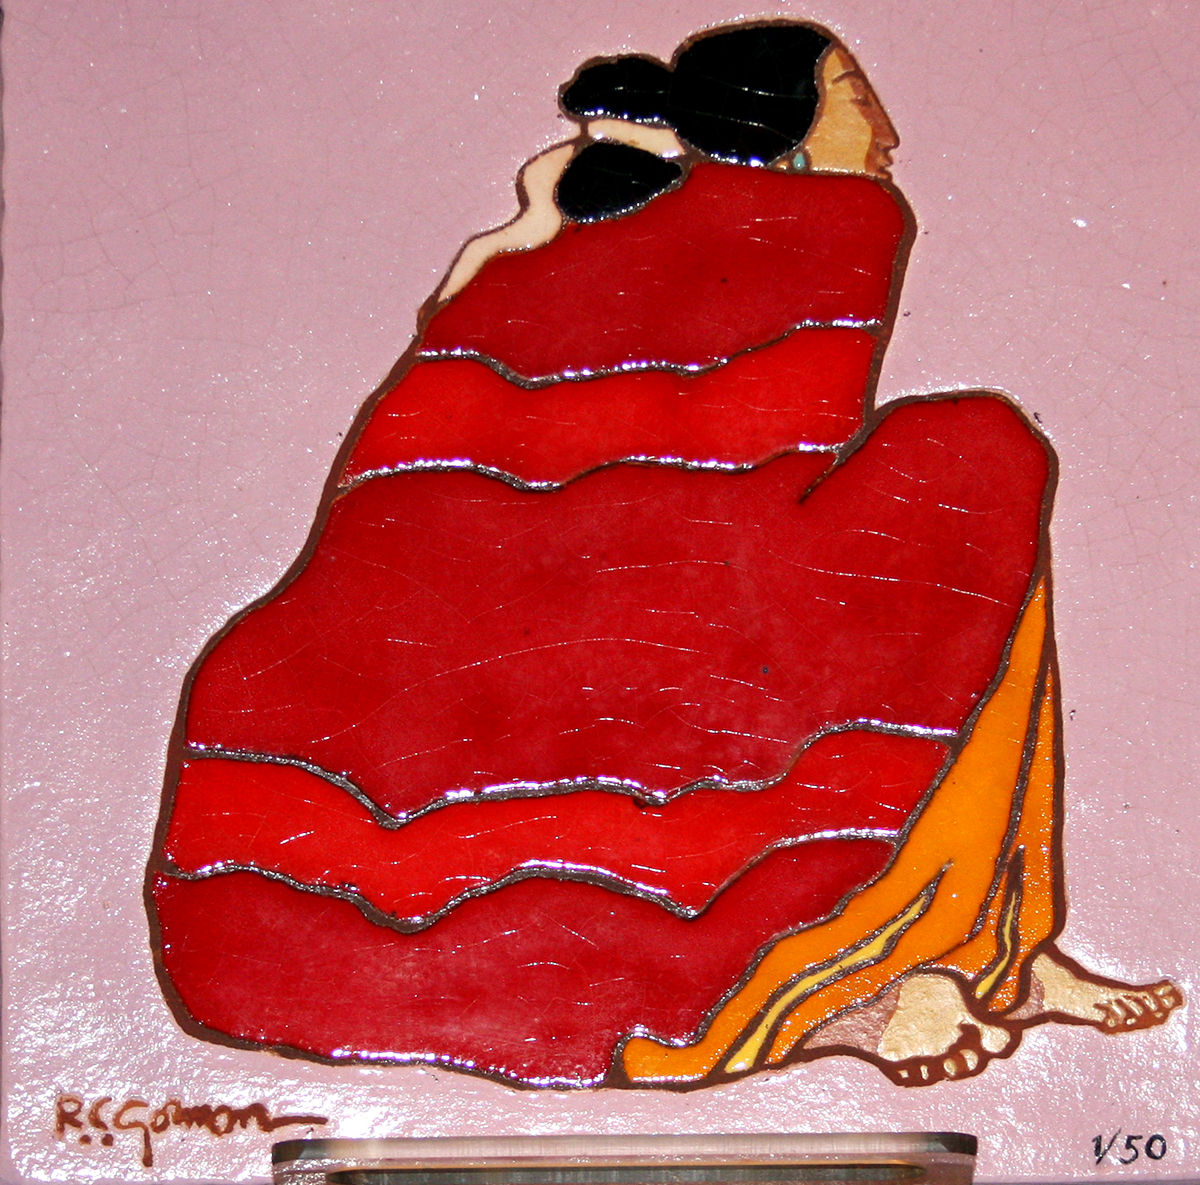 Michael mccormick gallery taos new mexico red blanket ceramic tile dailygadgetfo Image collections